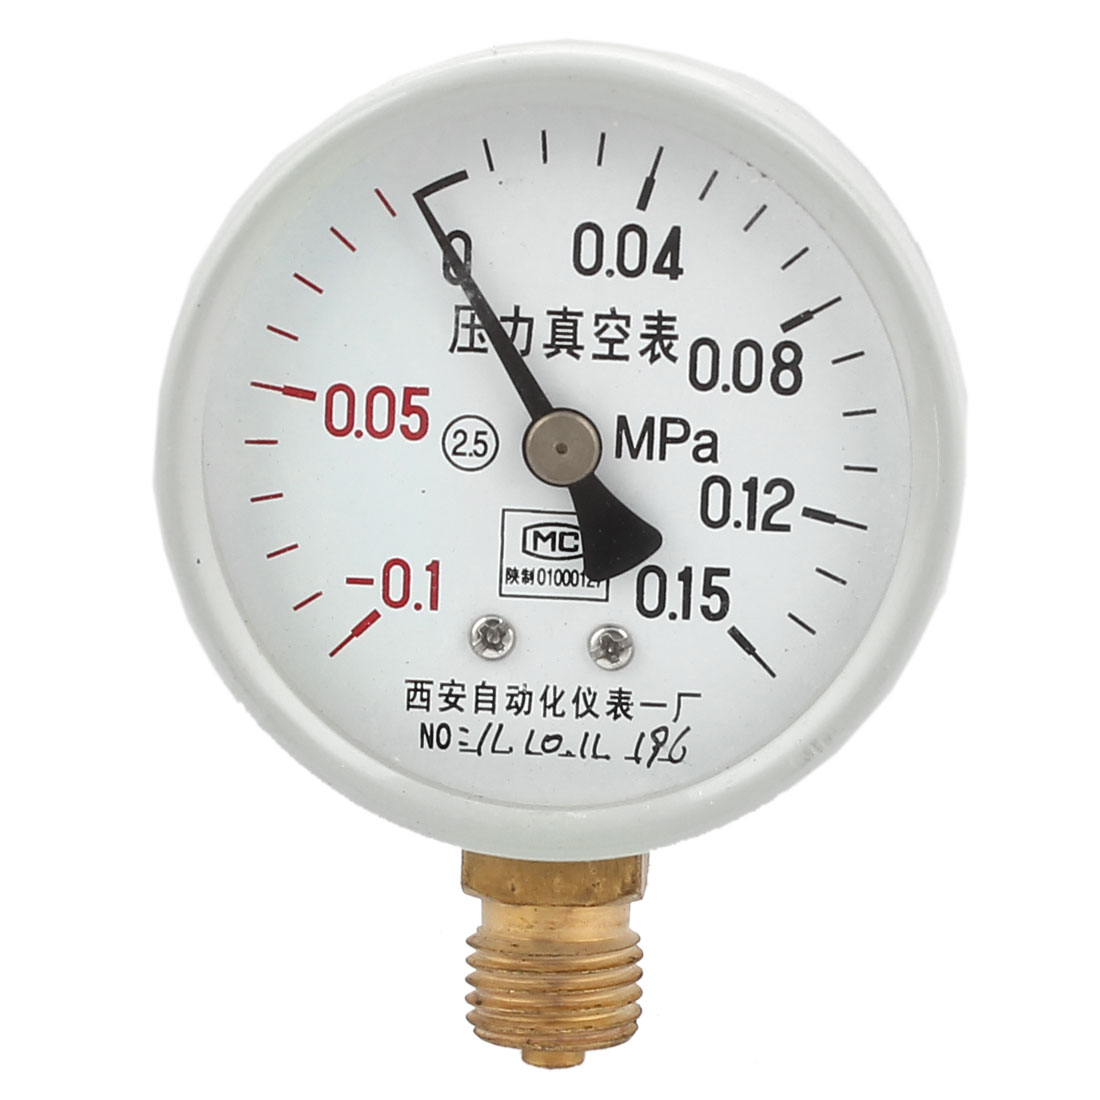 Round Dial Air Pneumatic Vacuum Pressure Meter Gauge -0.1MPa to -0.15MPa 60mm